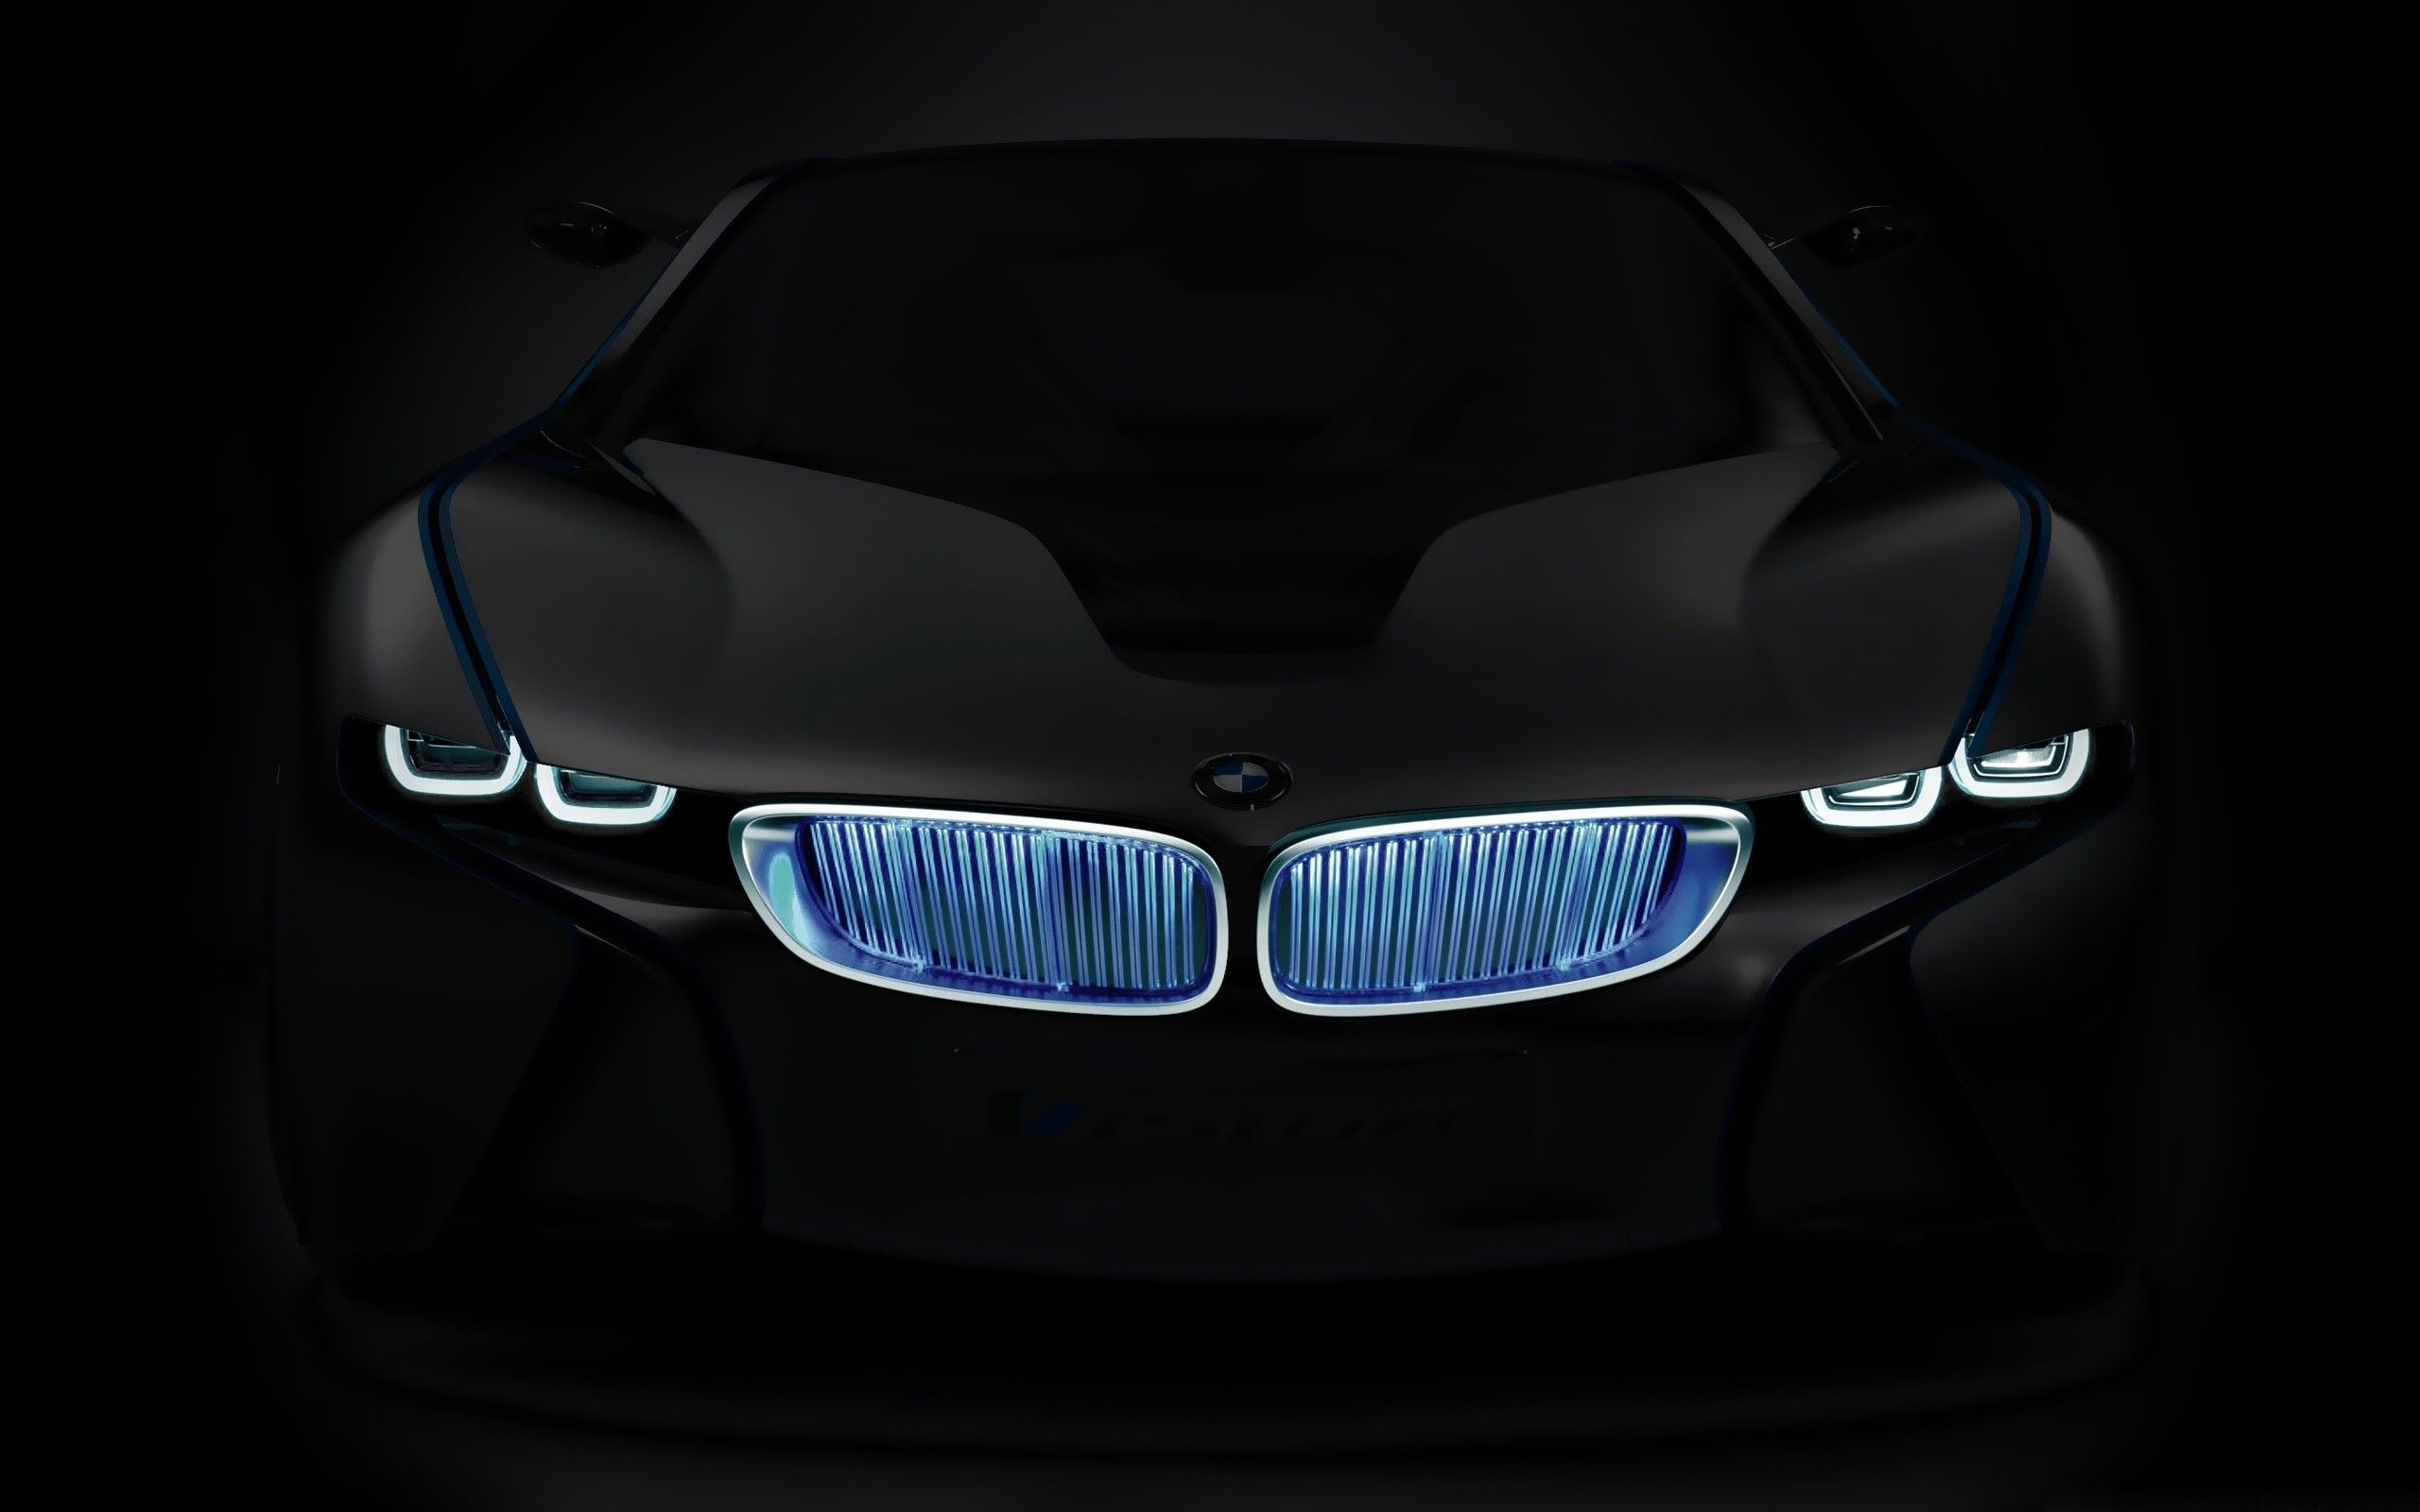 bmw i8 full hd wallpaper and background image | 2560x1600 | id:451786